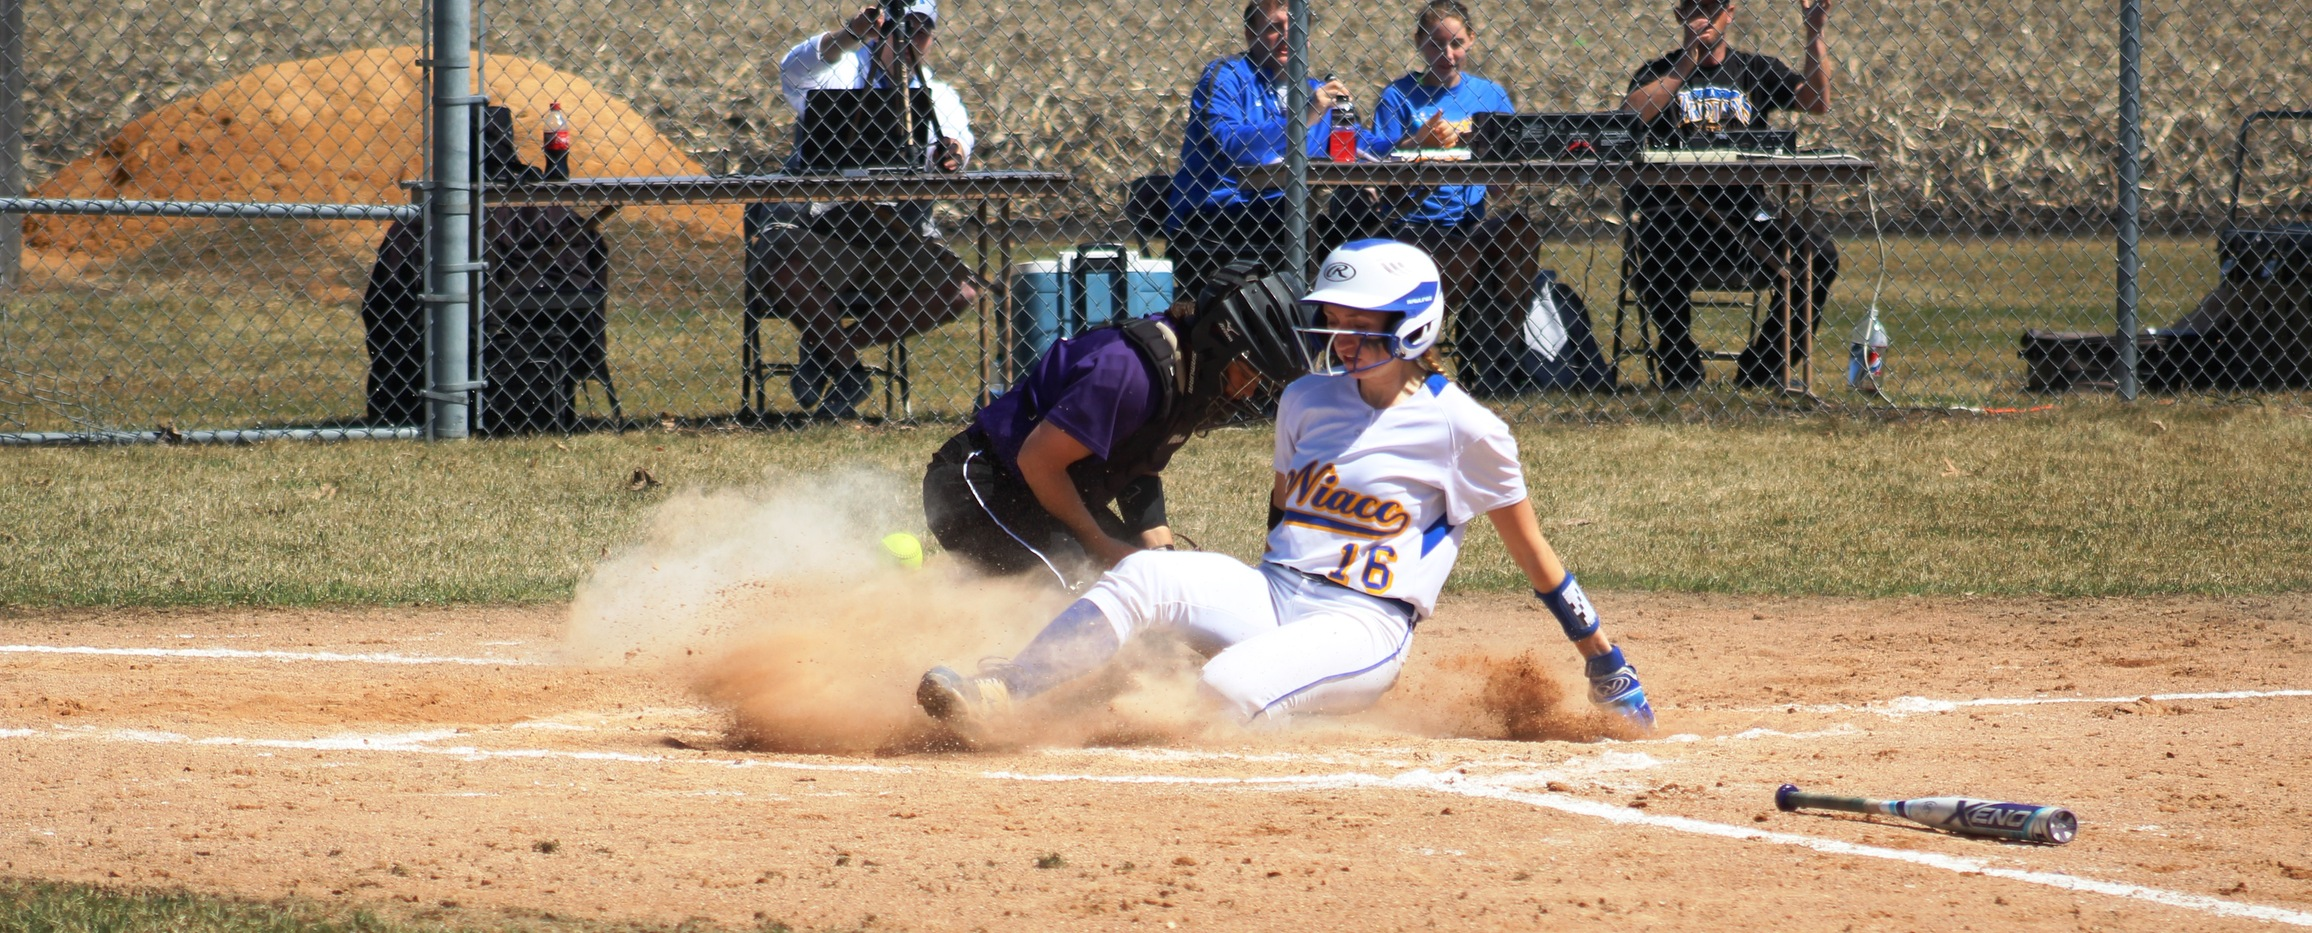 NIACC's Morgan Thesing-Ritter slides in safely at home after hitting an inside-the-park home run in the third inning of Wednesday's first game against Ellsworth.